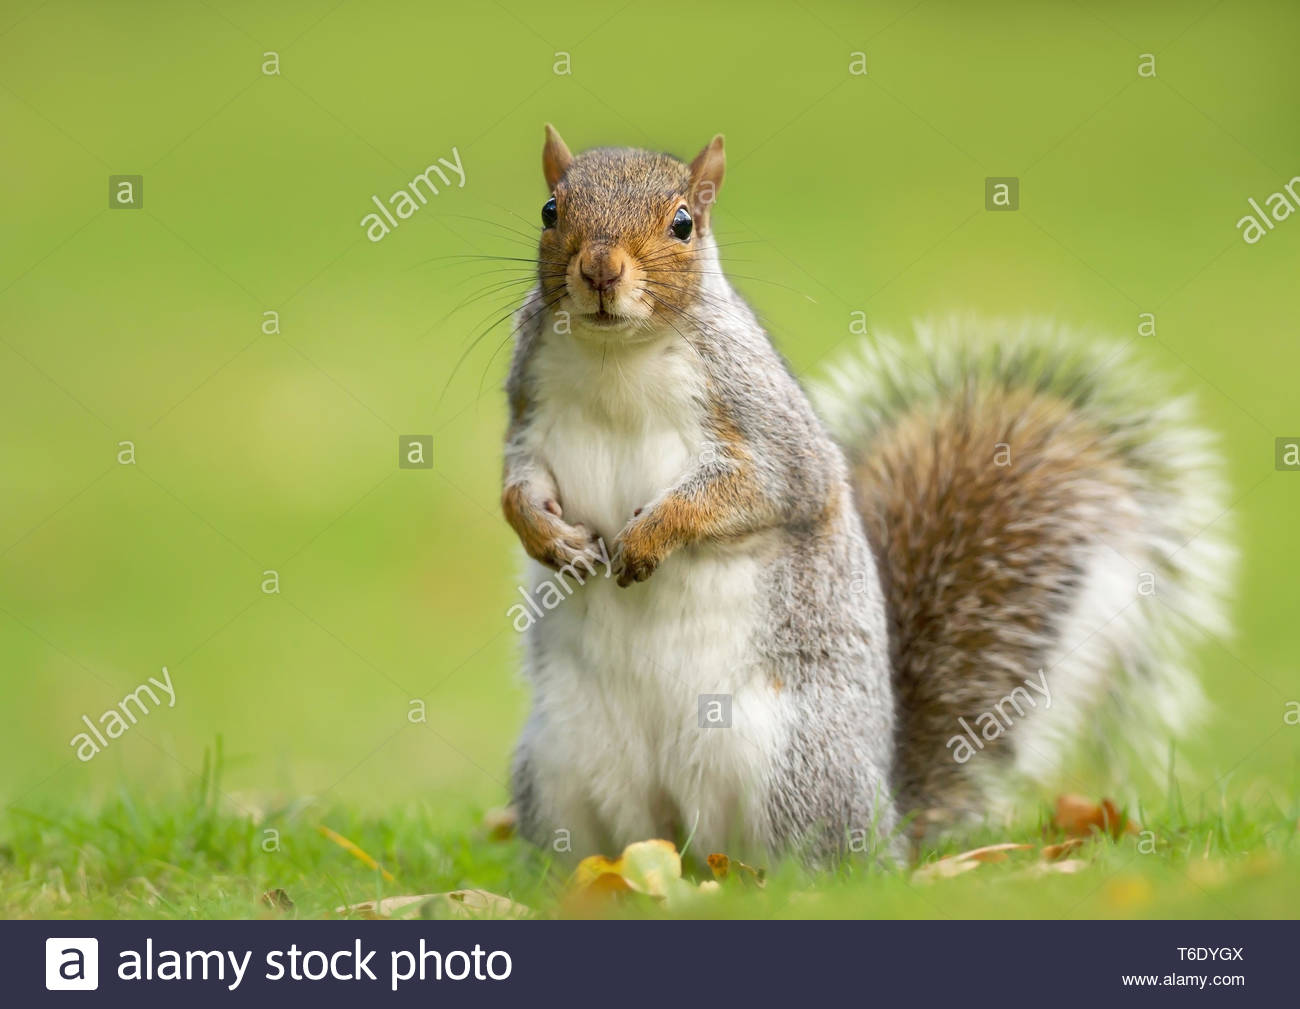 Surprised grey squirrel standing in autumnal leaves - Stock Image